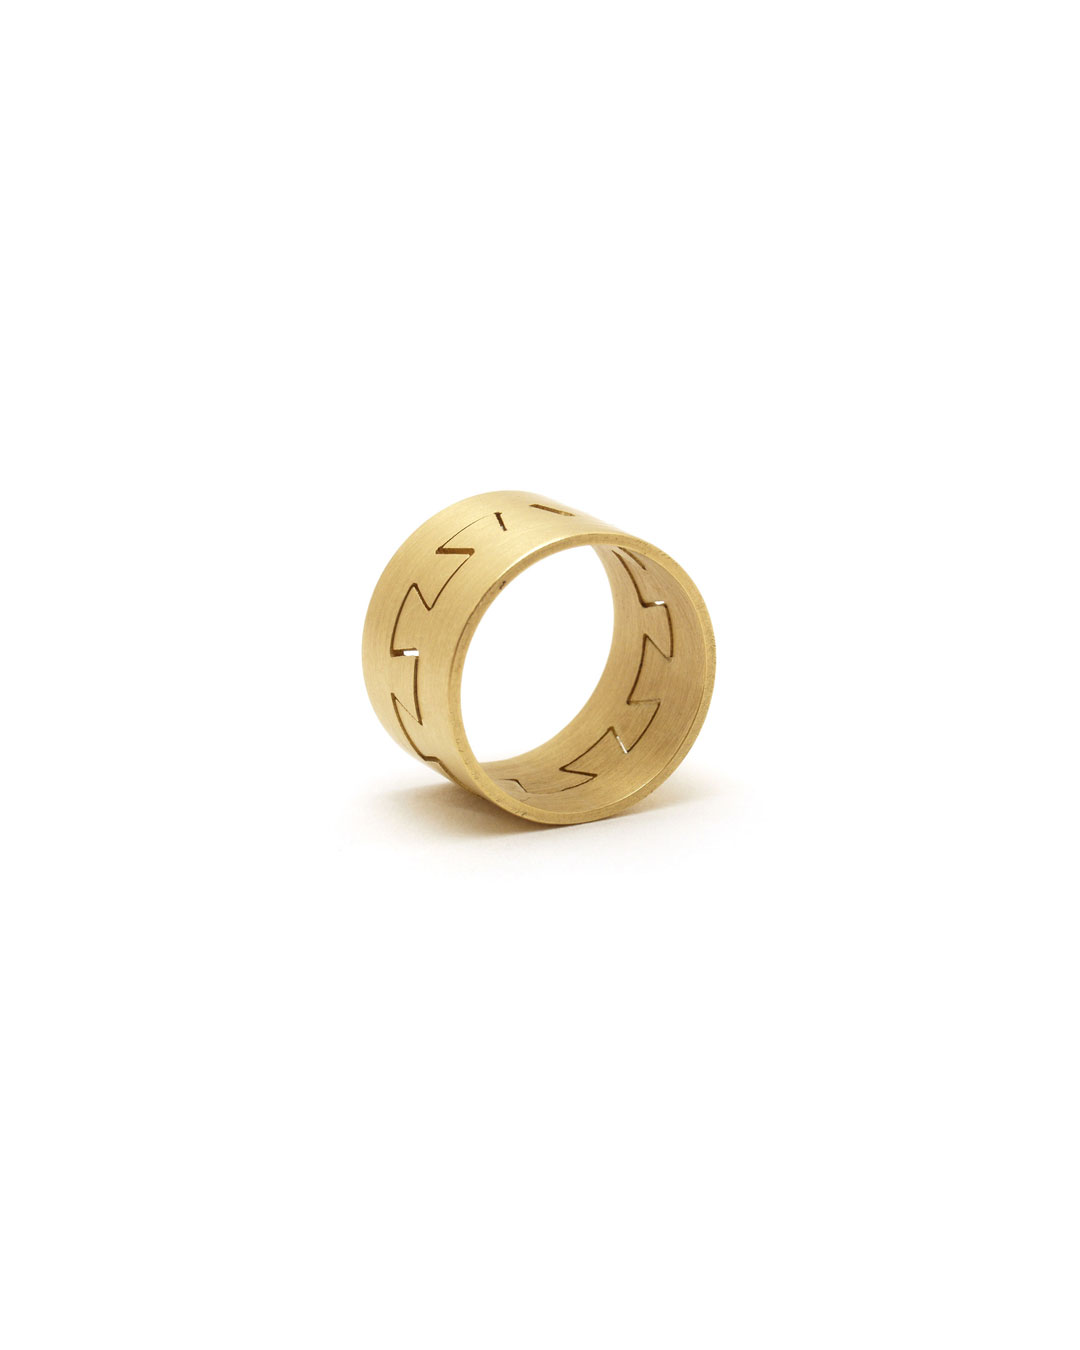 Herman Hermsen, Meanderring, 1995, ring; 18ct gold, ø 25 mm, €1250